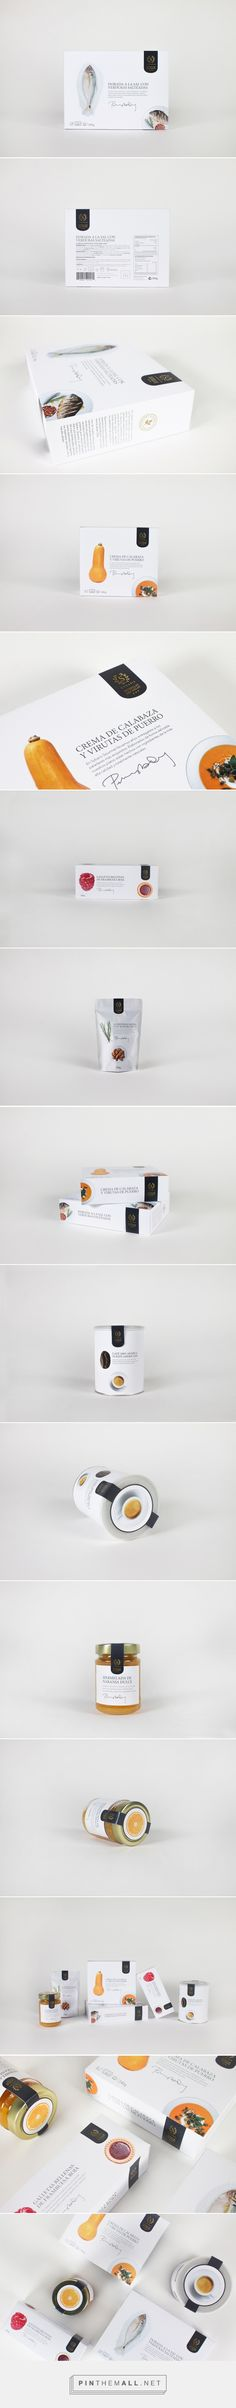 Sybaris Gourmet (Student Project) - Packaging of the World - Creative Package Design Gallery - http://www.packagingoftheworld.com/2016/07/sybaris-gourmet-student-project.html